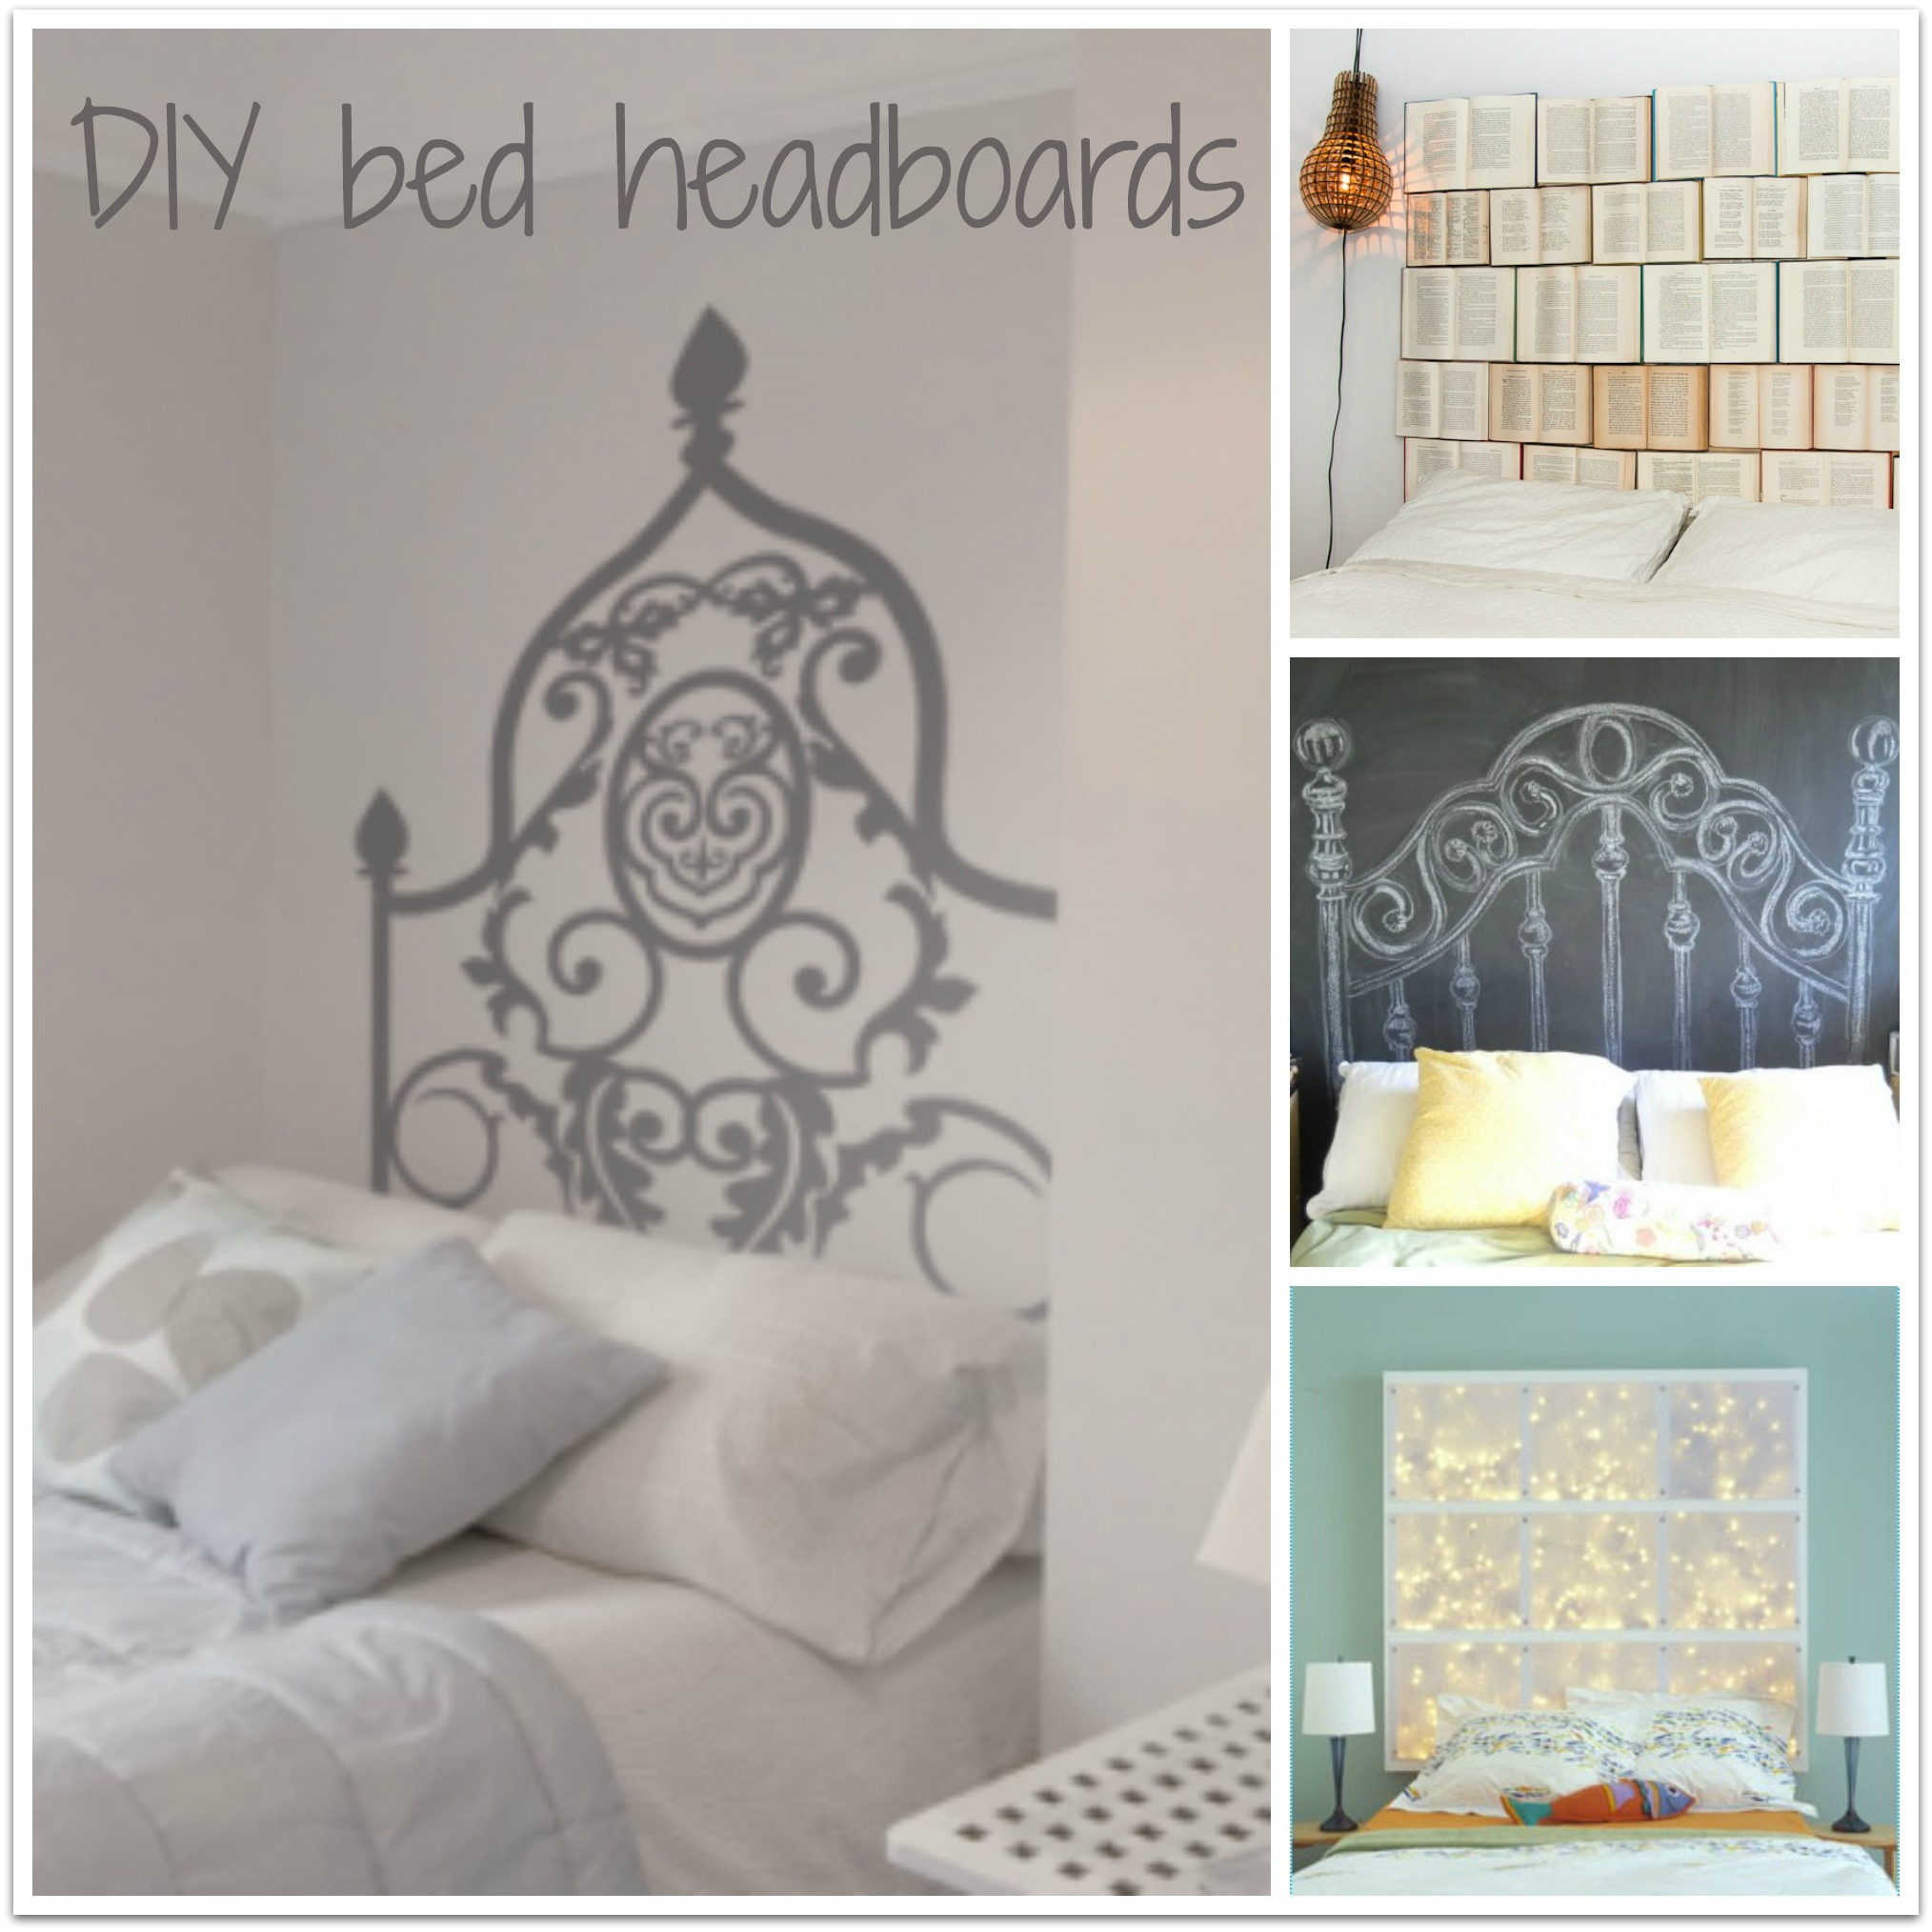 Testiera del letto fai da te * DIY bed headboard - Caseperlatesta